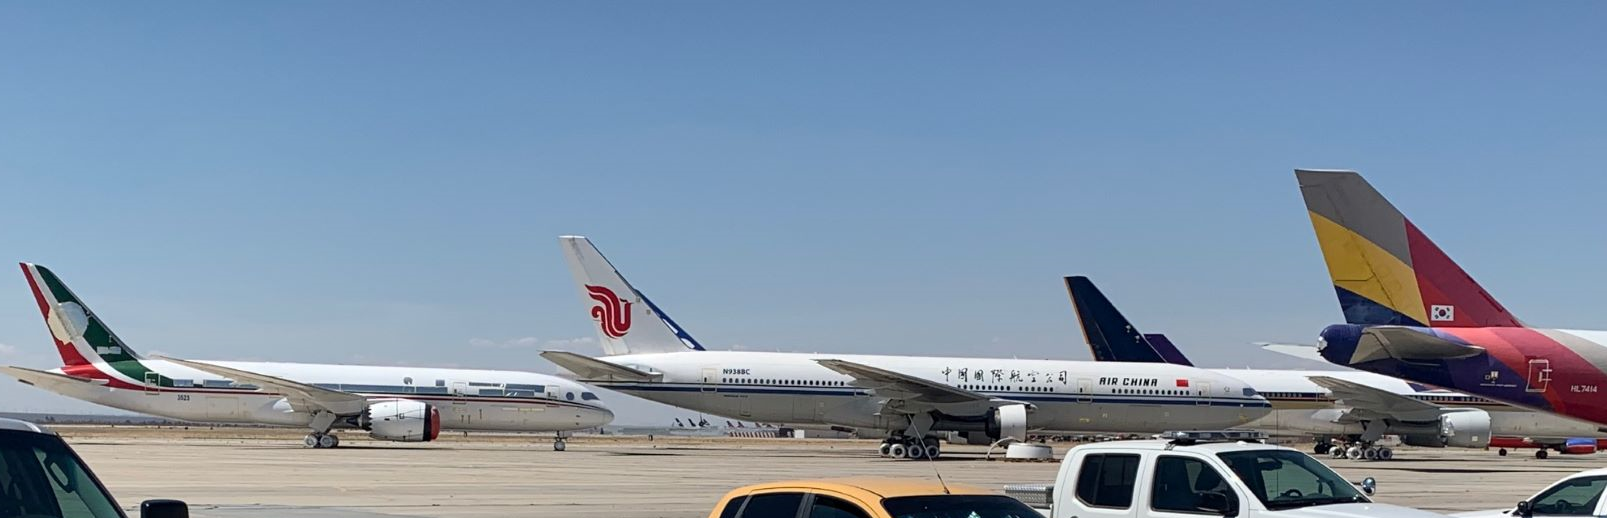 The ex Mexican Presidential Dreamliner is on the far left in red and green, along with 2 x ex Singapore Airlines 777's and an Asiana 747 Freighter